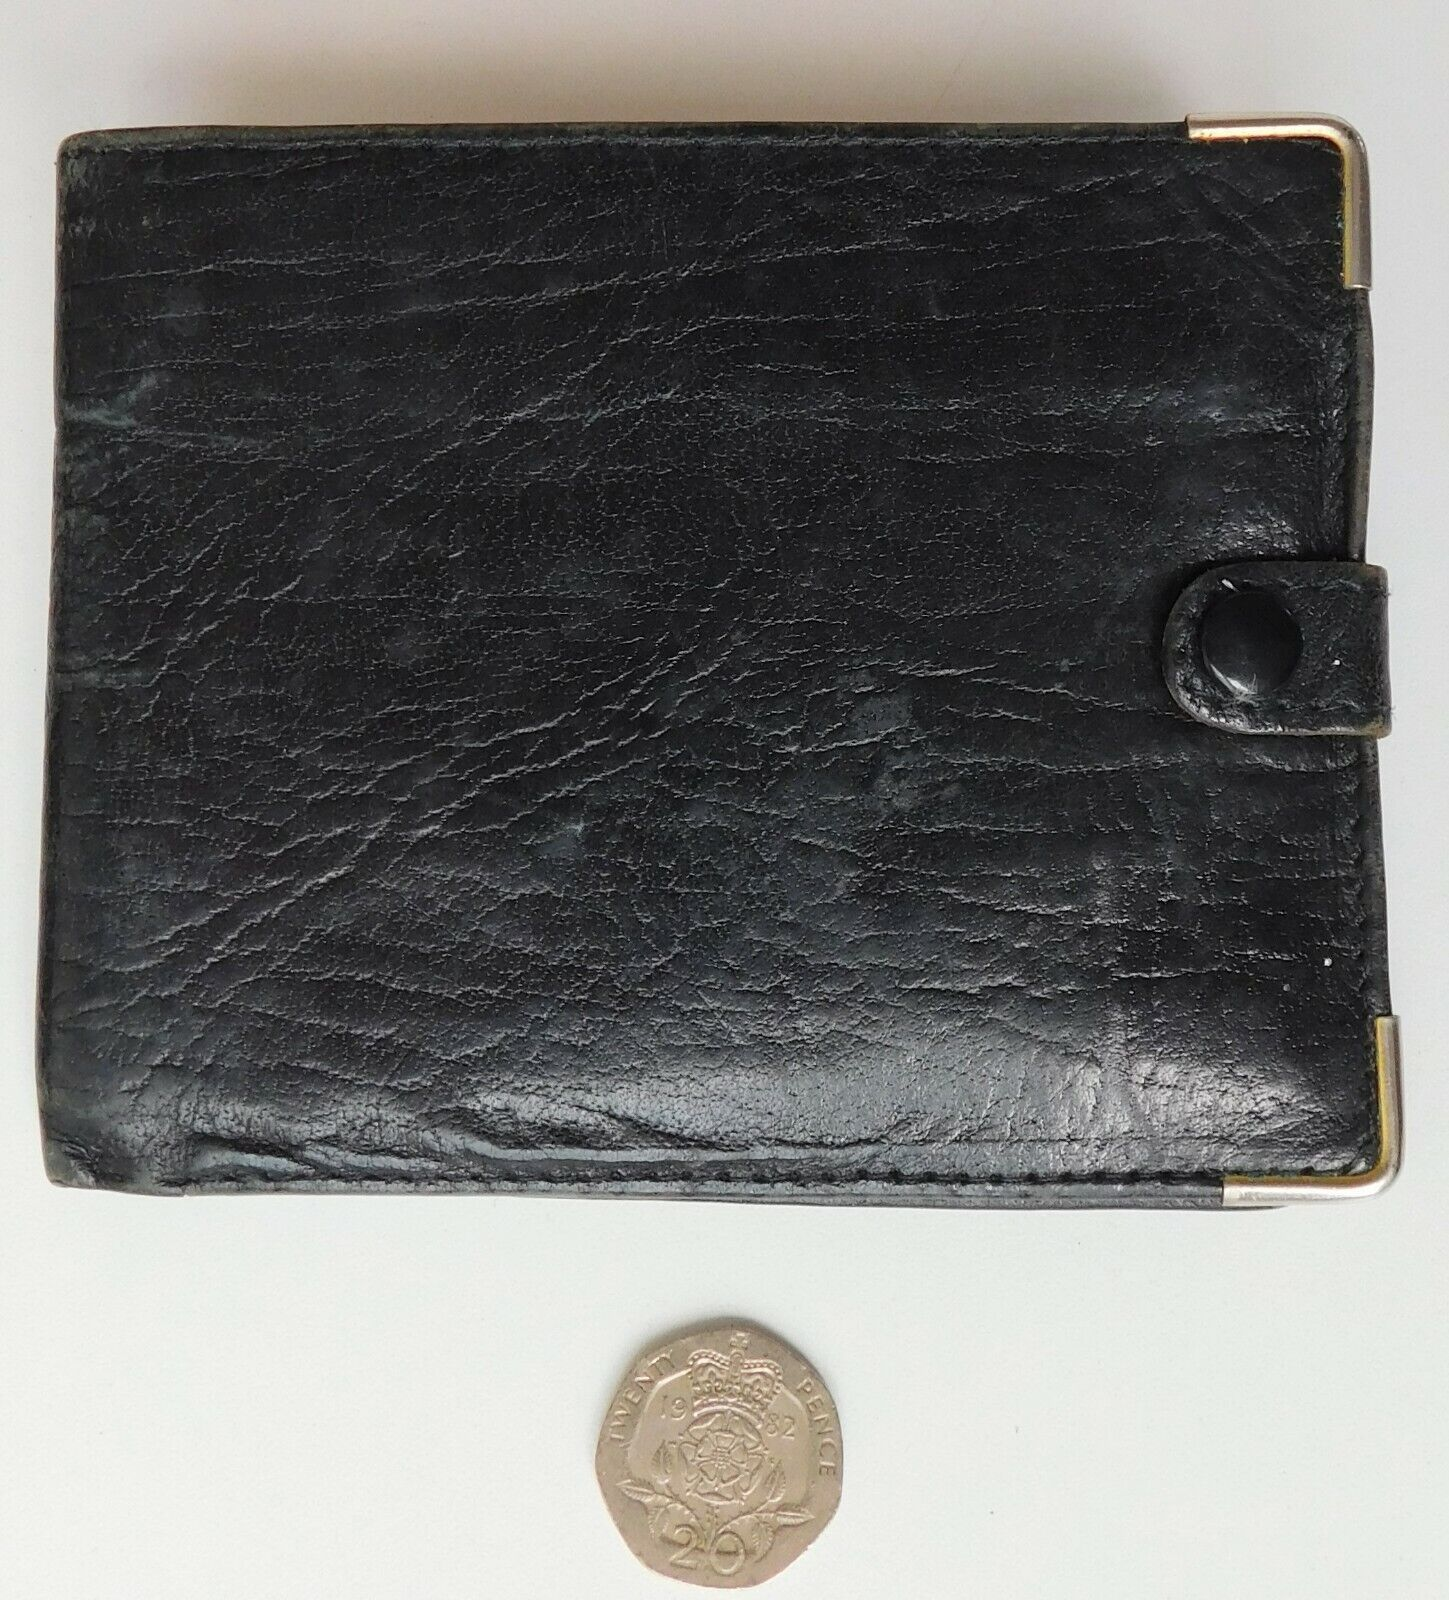 Genuine leather vintage wallet made in England black 1970s 1980s men or women